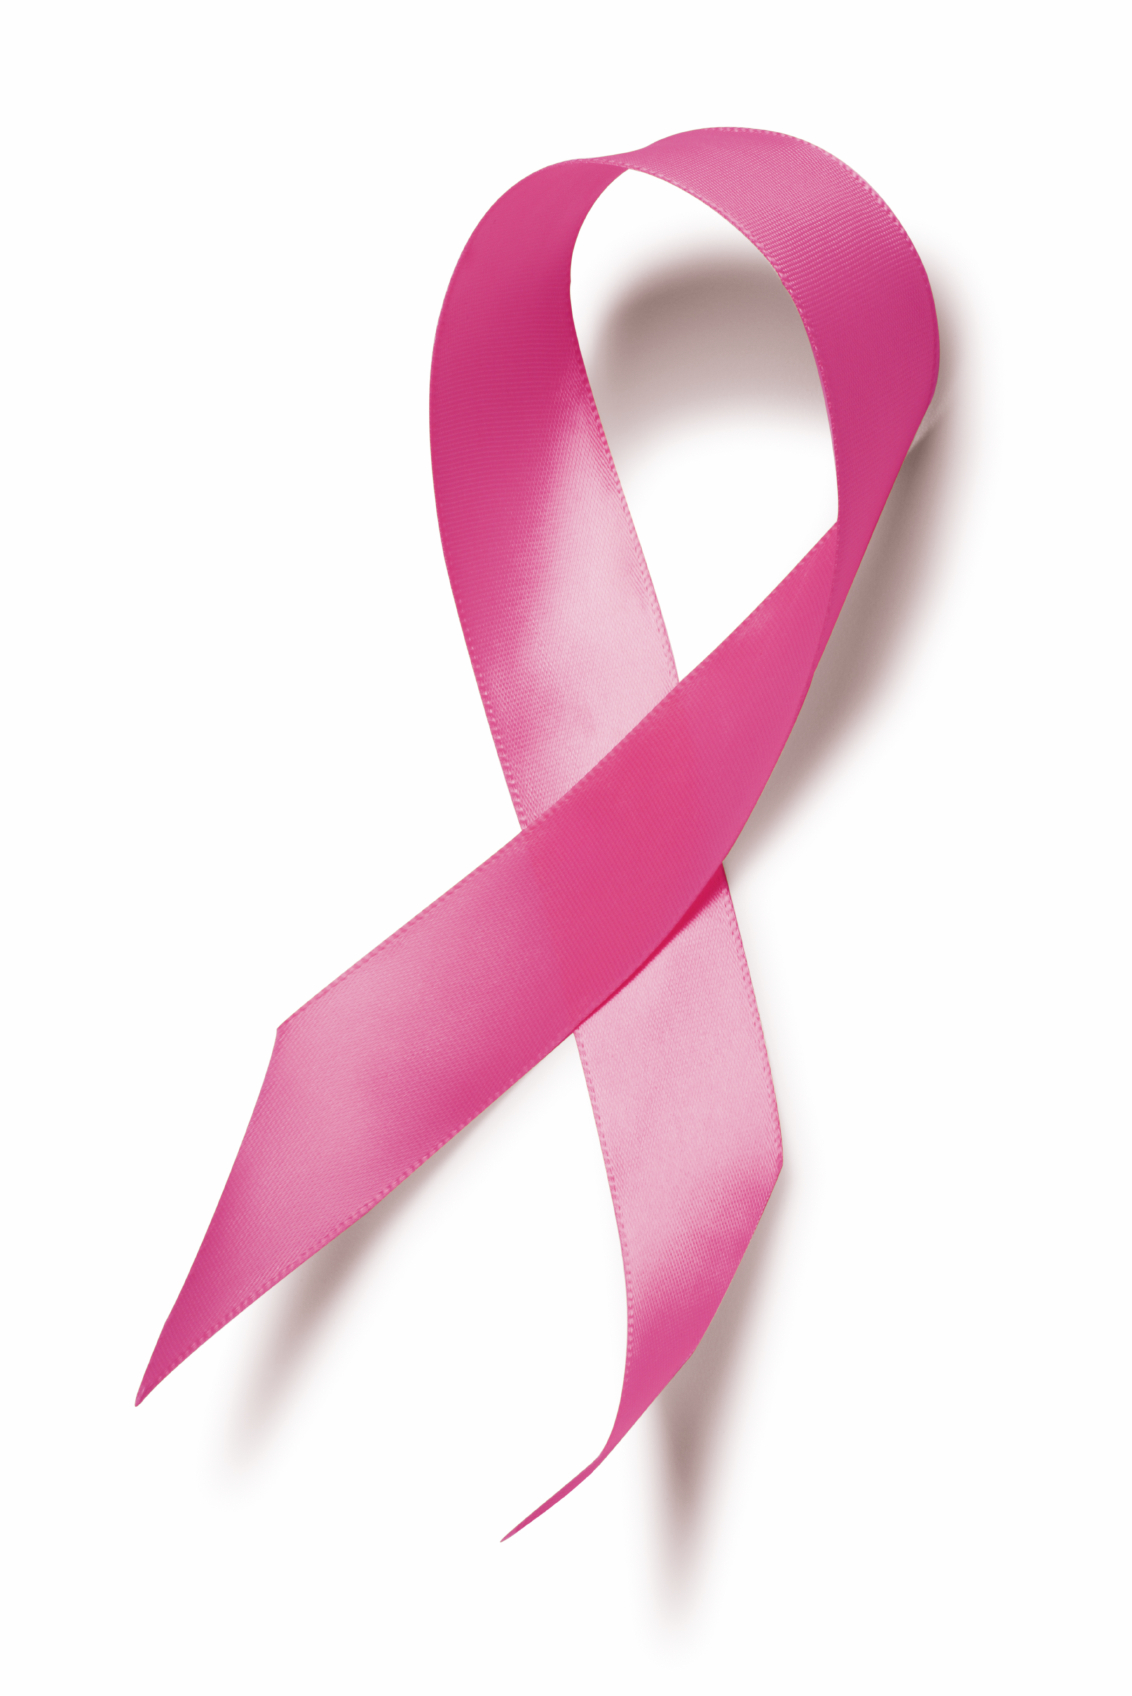 1132x1696 Breast Cancer Ribbon 2 Clip Art Vector Free